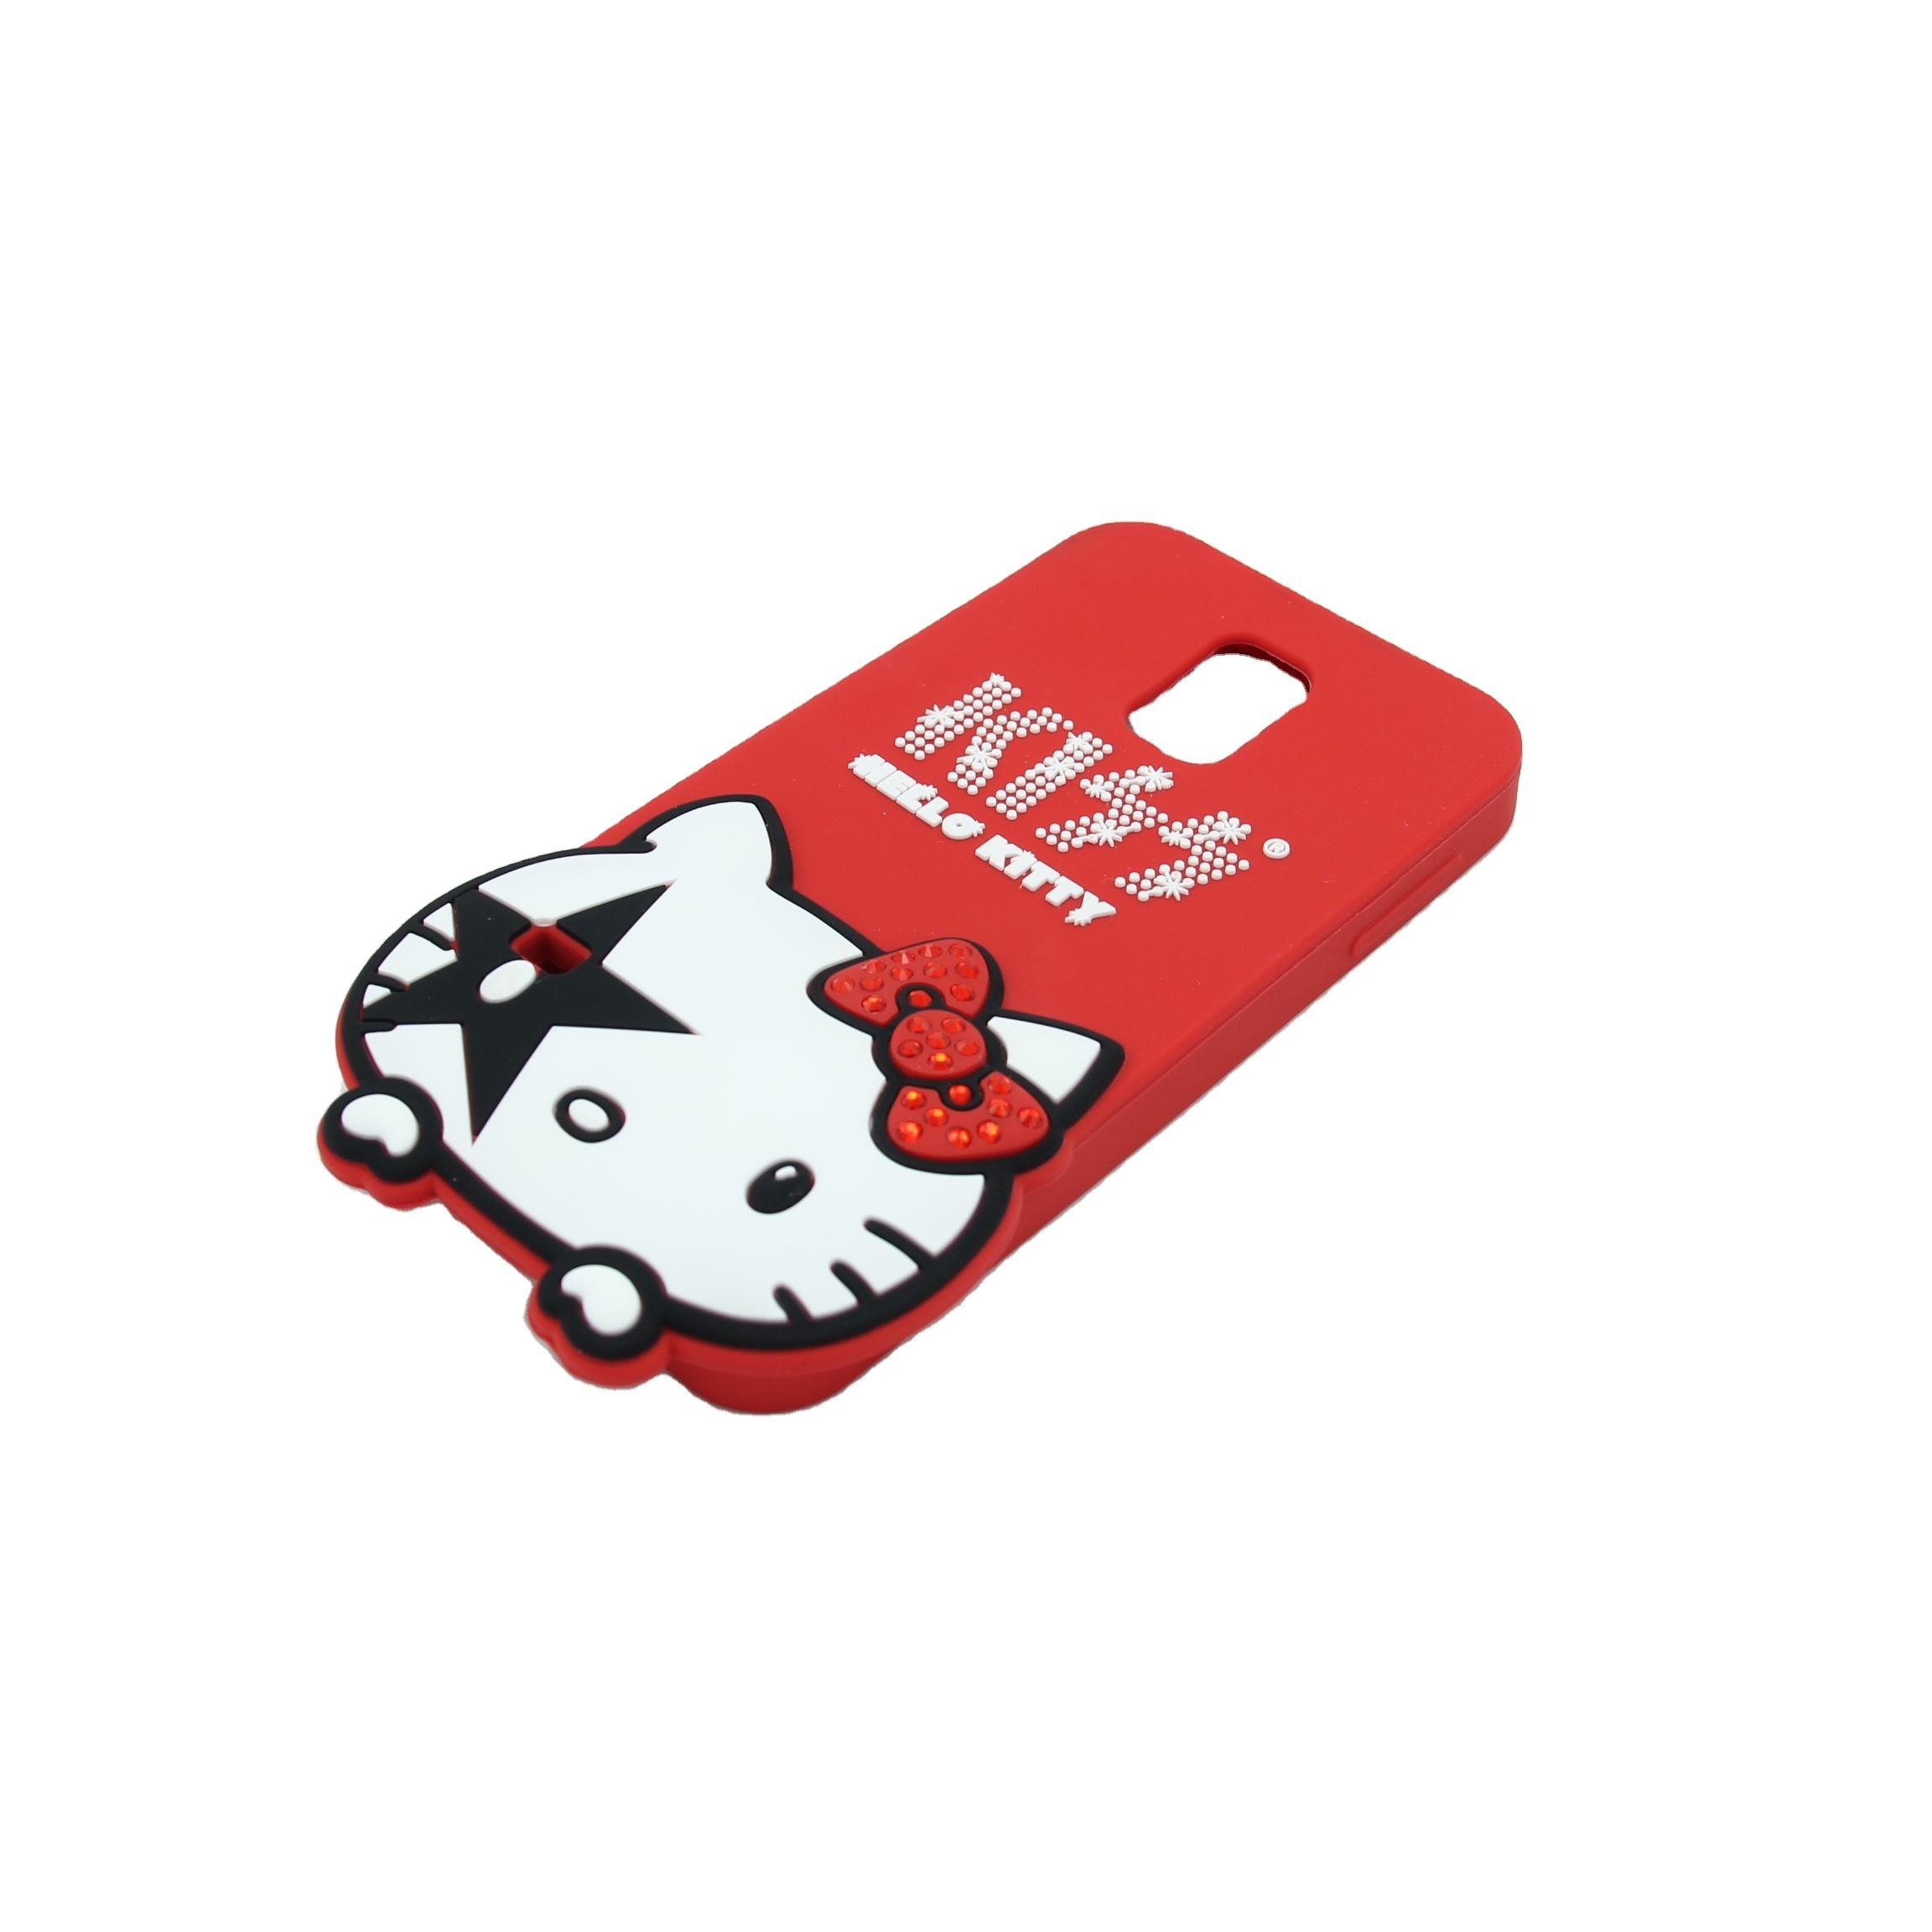 Hot sale kustom <span class=keywords><strong>hello</strong></span> <span class=keywords><strong>kitty</strong></span> silikon phone case untuk Iphone 11